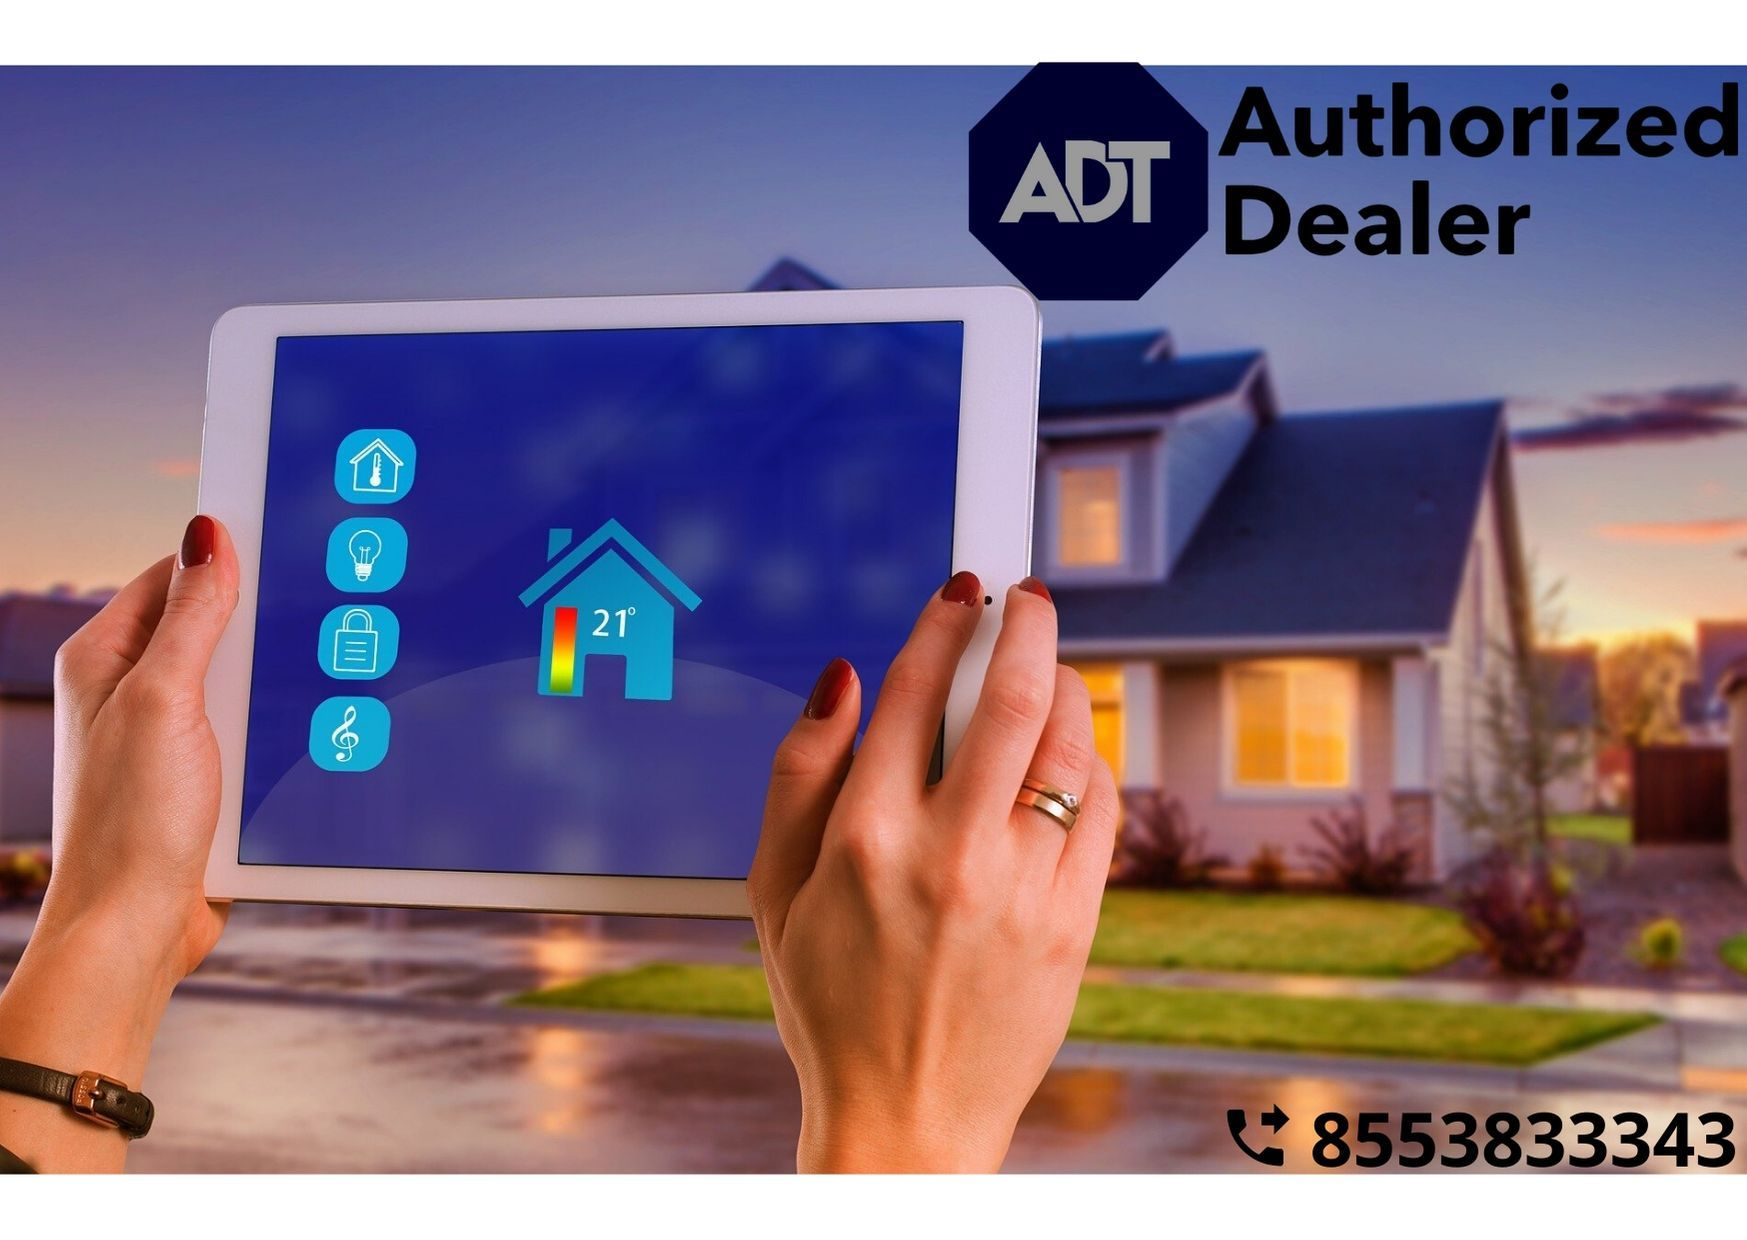 Protect Your Home With My Adt Home Security Systems Home Security Companies Home Automation System Home Security Systems